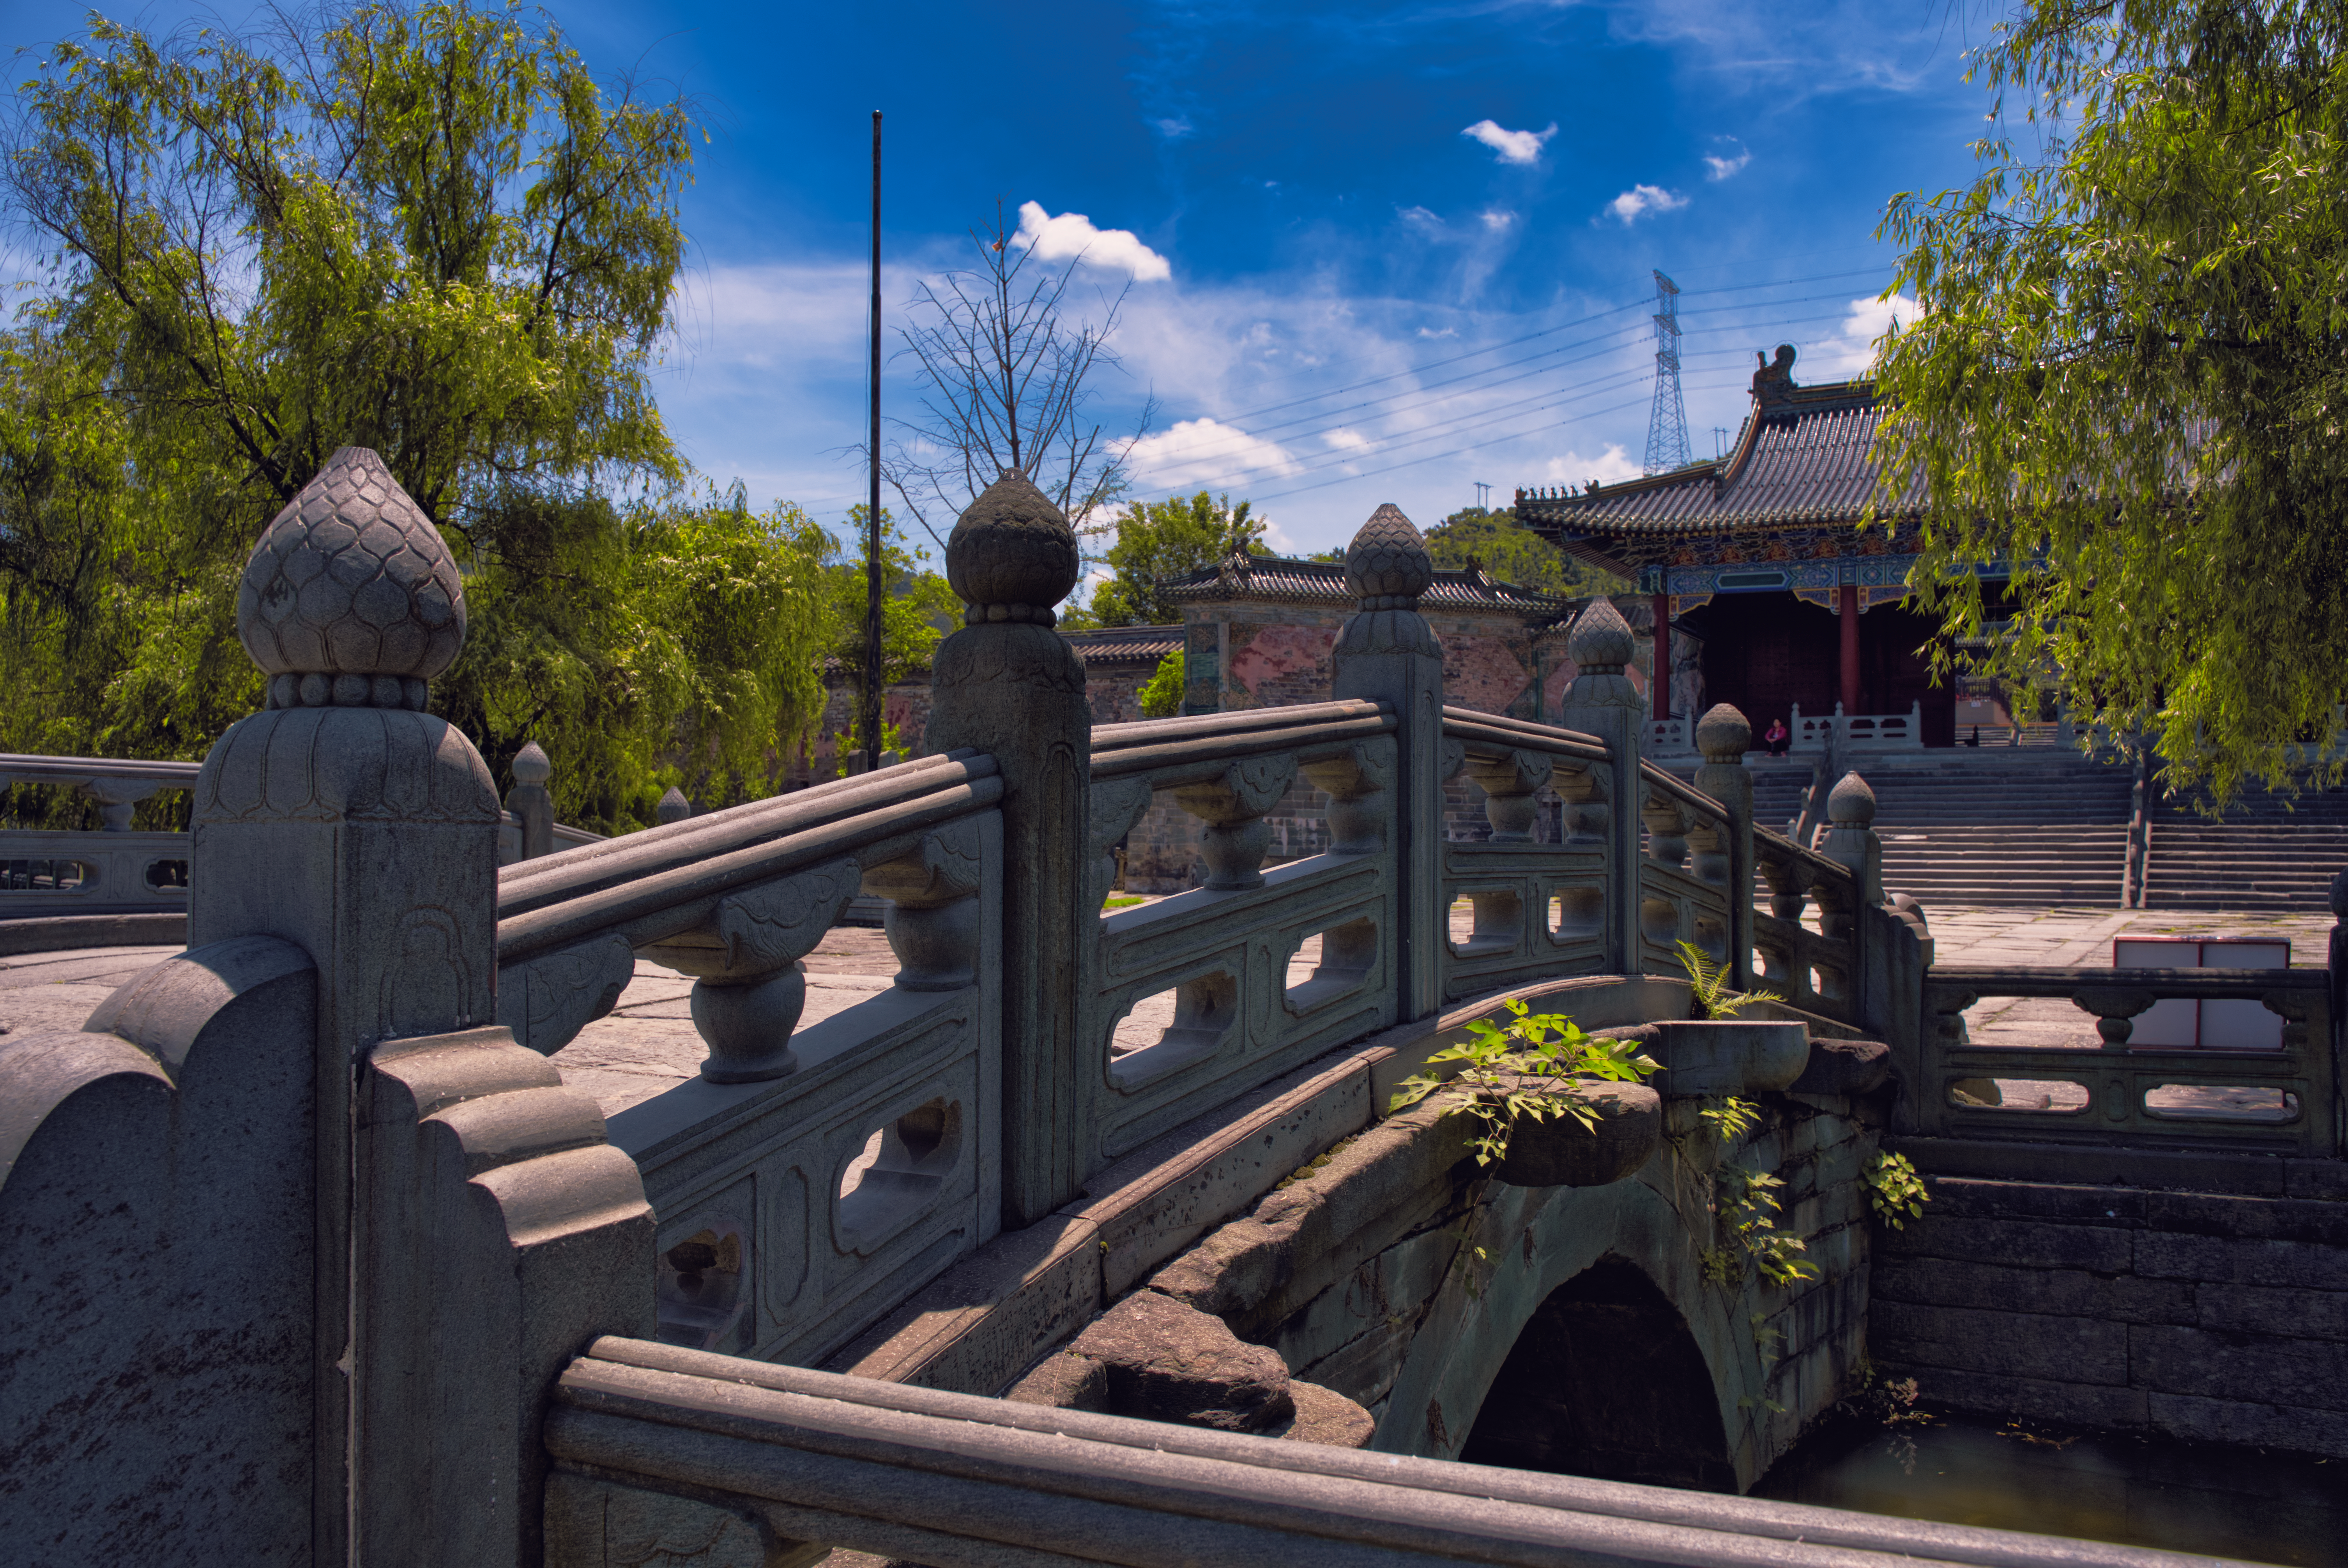 Visiting the Wudang Mountains in 2019